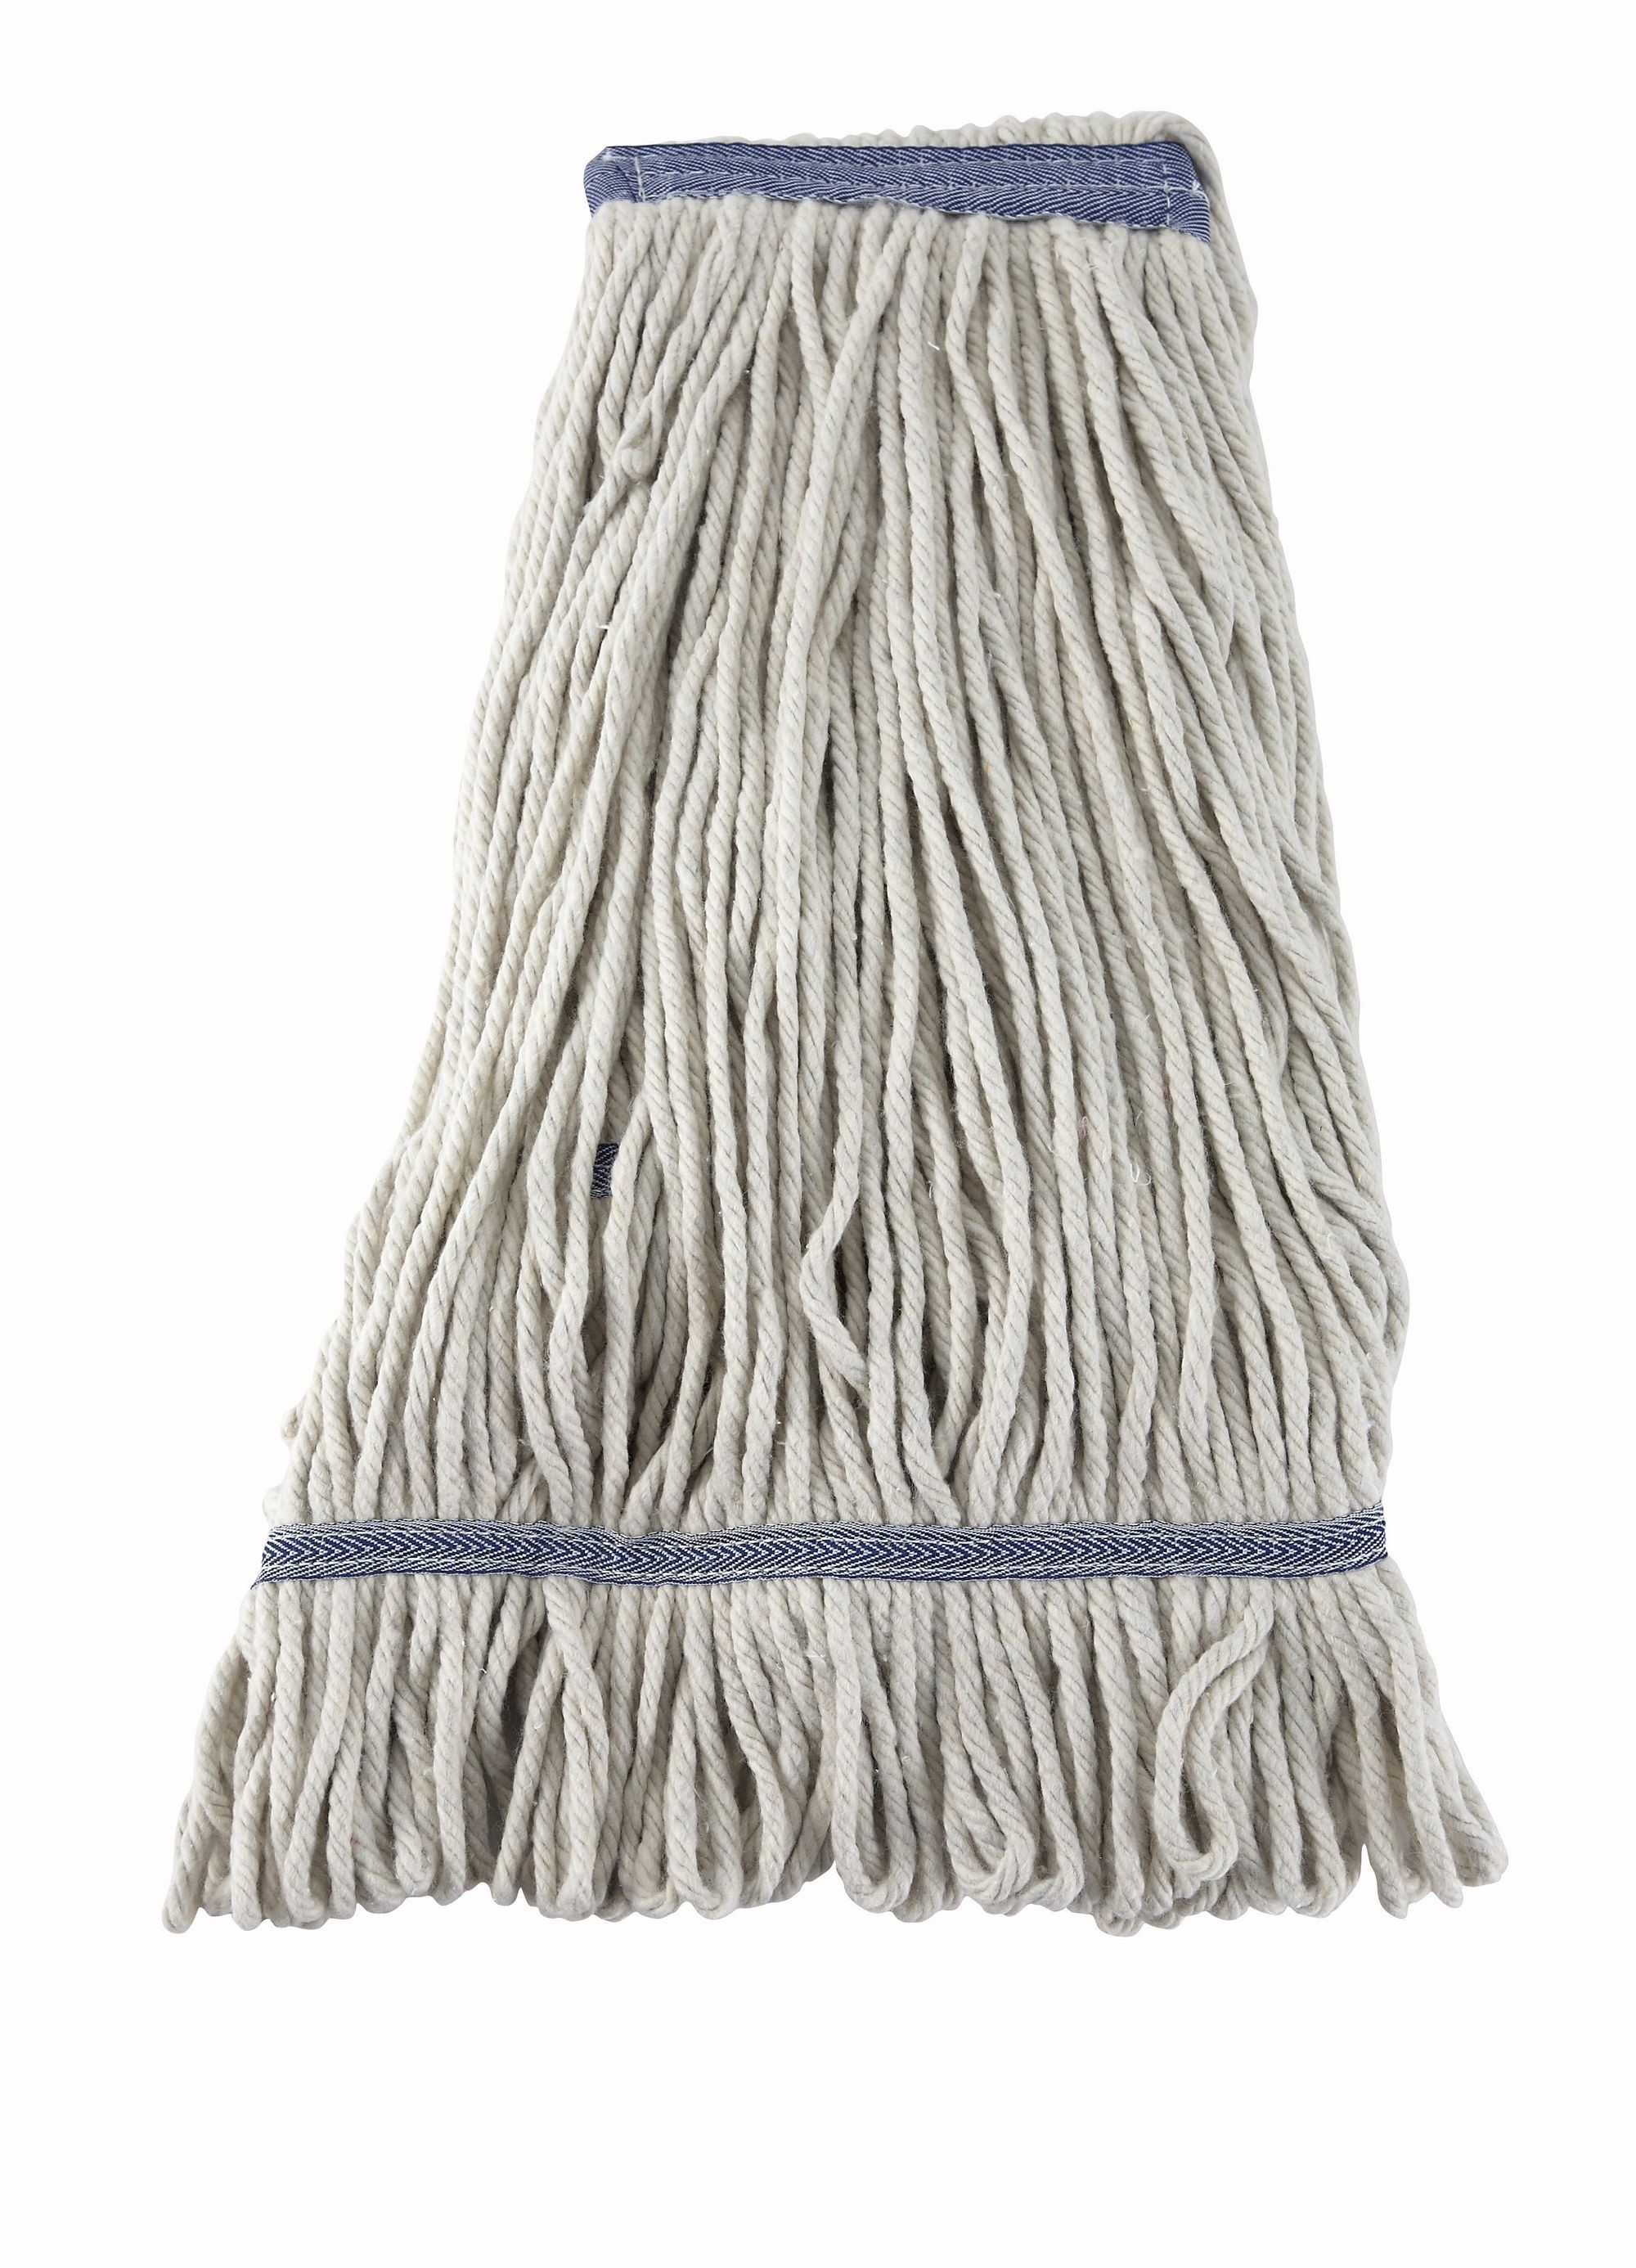 Winco MOP-24W White Yarn Looped-End Wet Mop Head 600g 24 oz.